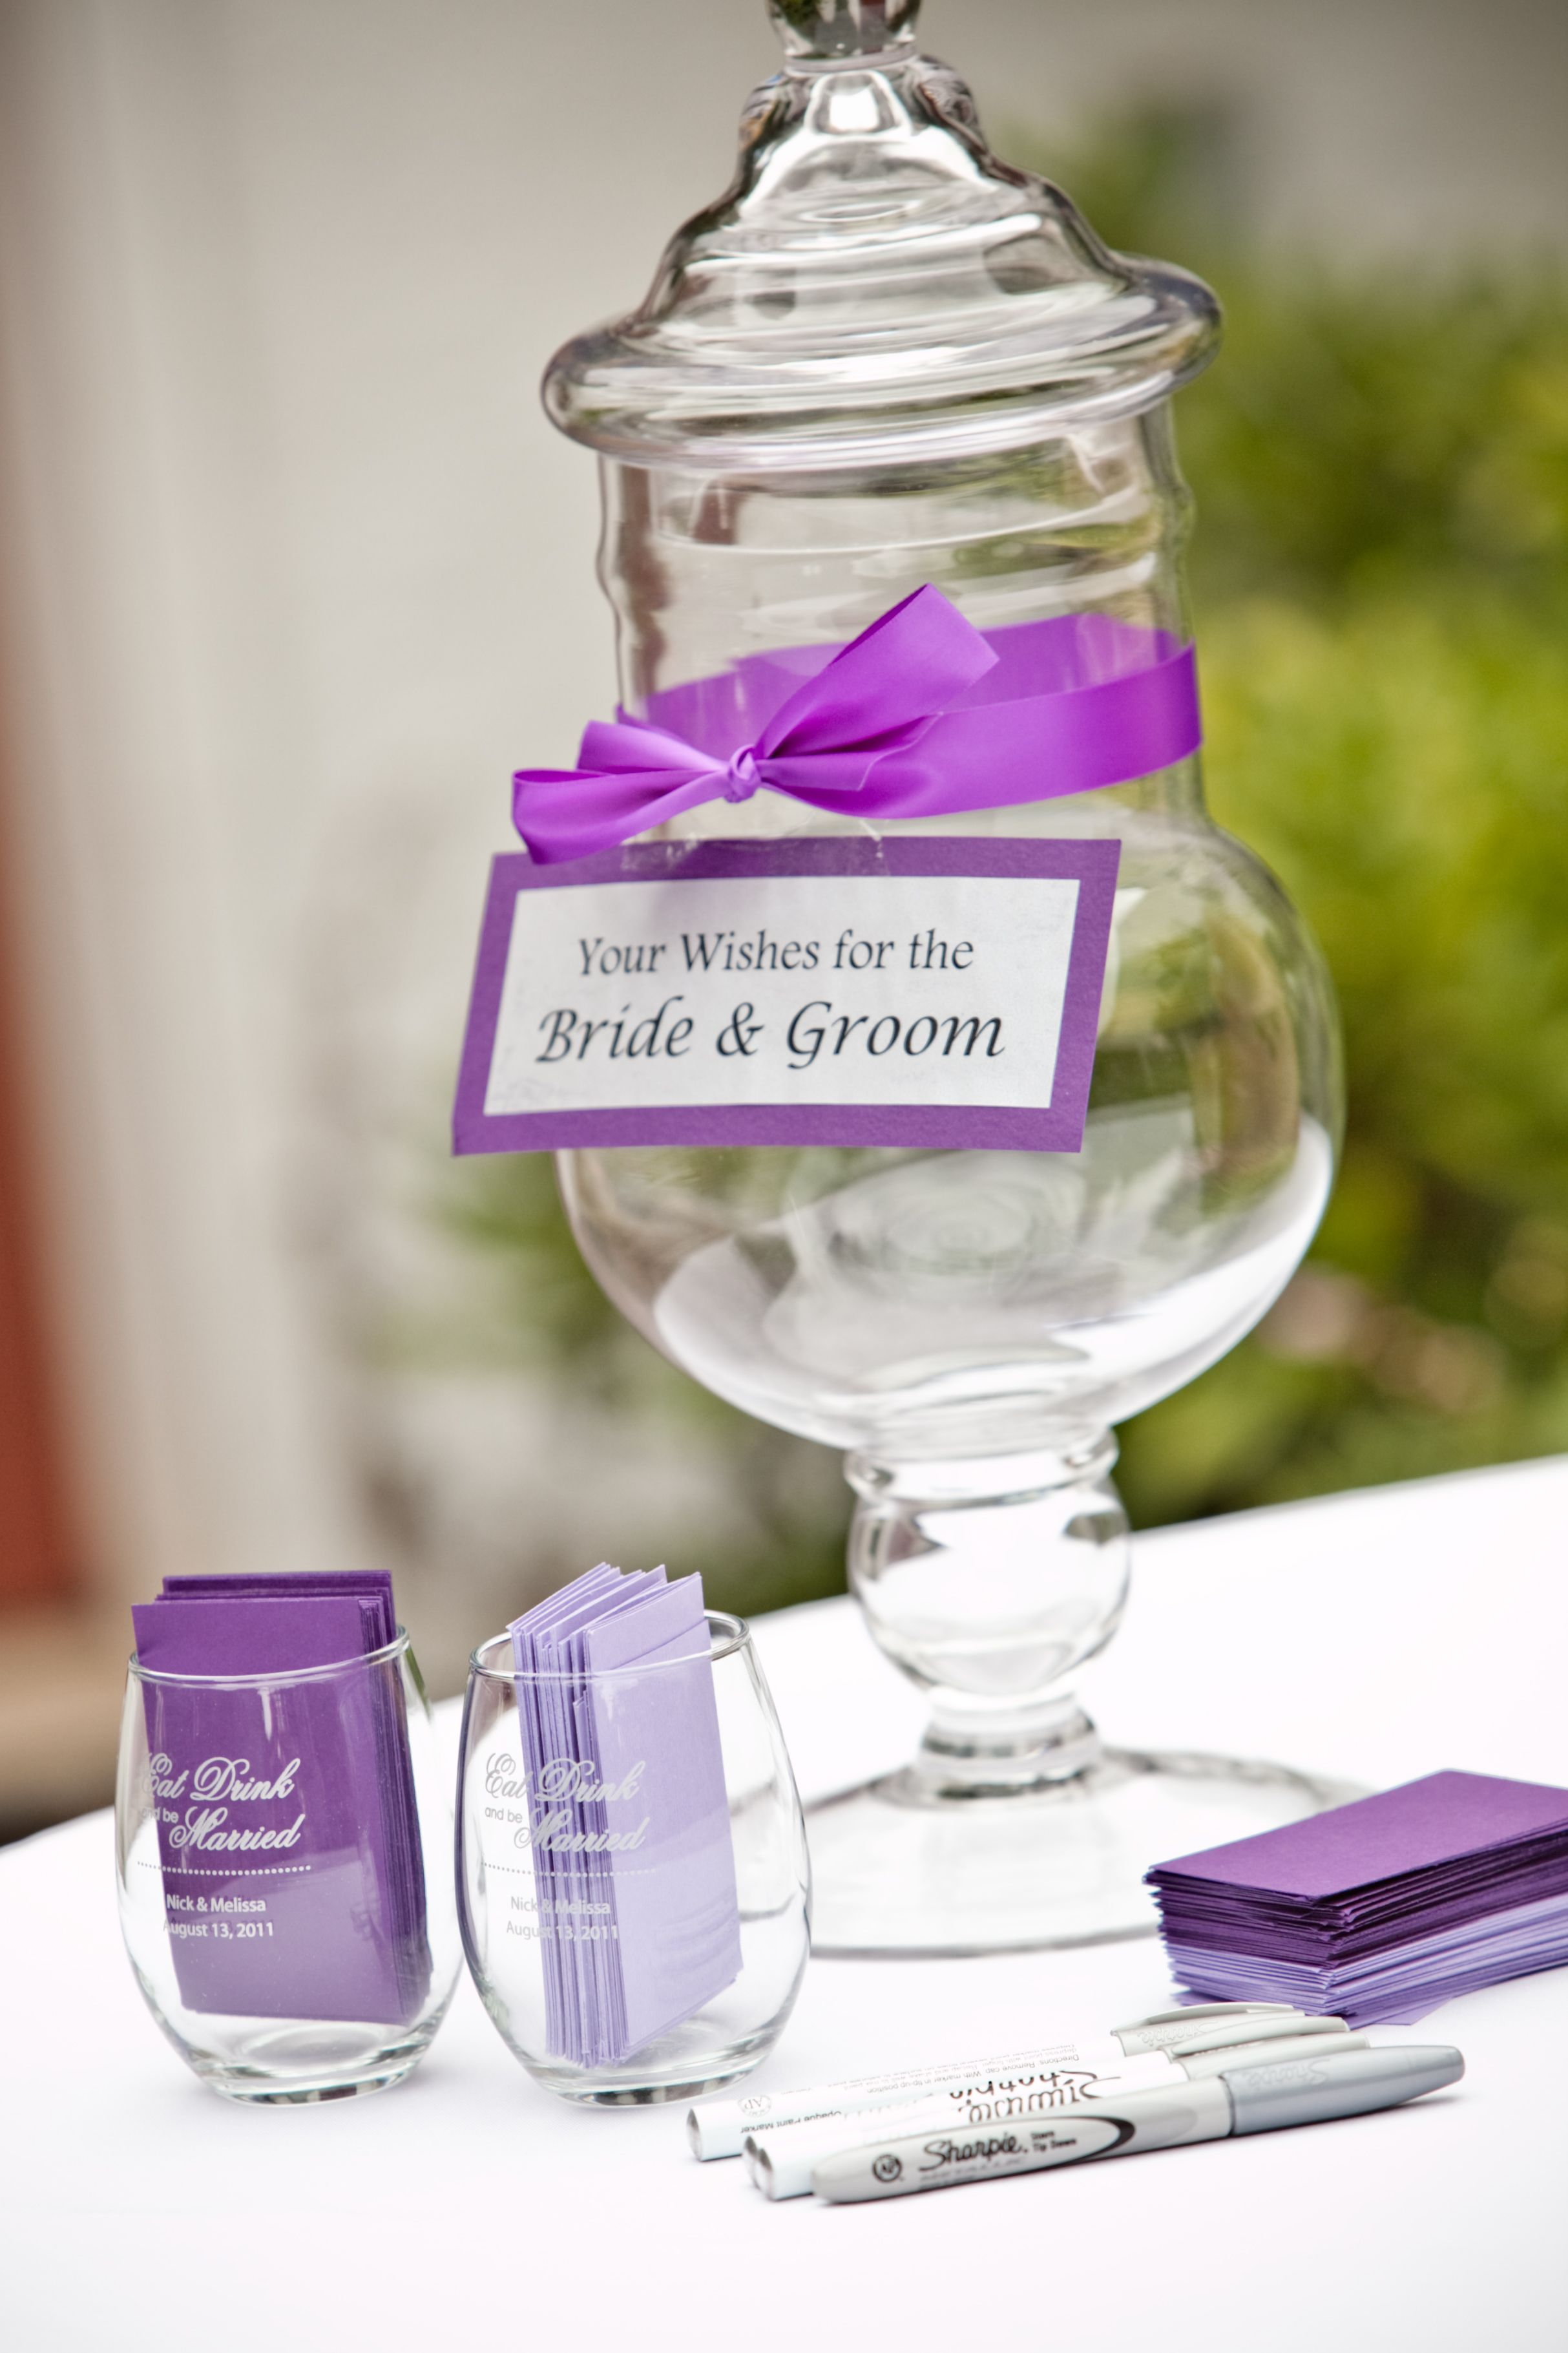 Wish Jar For The Bride And Groom Great To Have Near Guest Book Wedding Reception